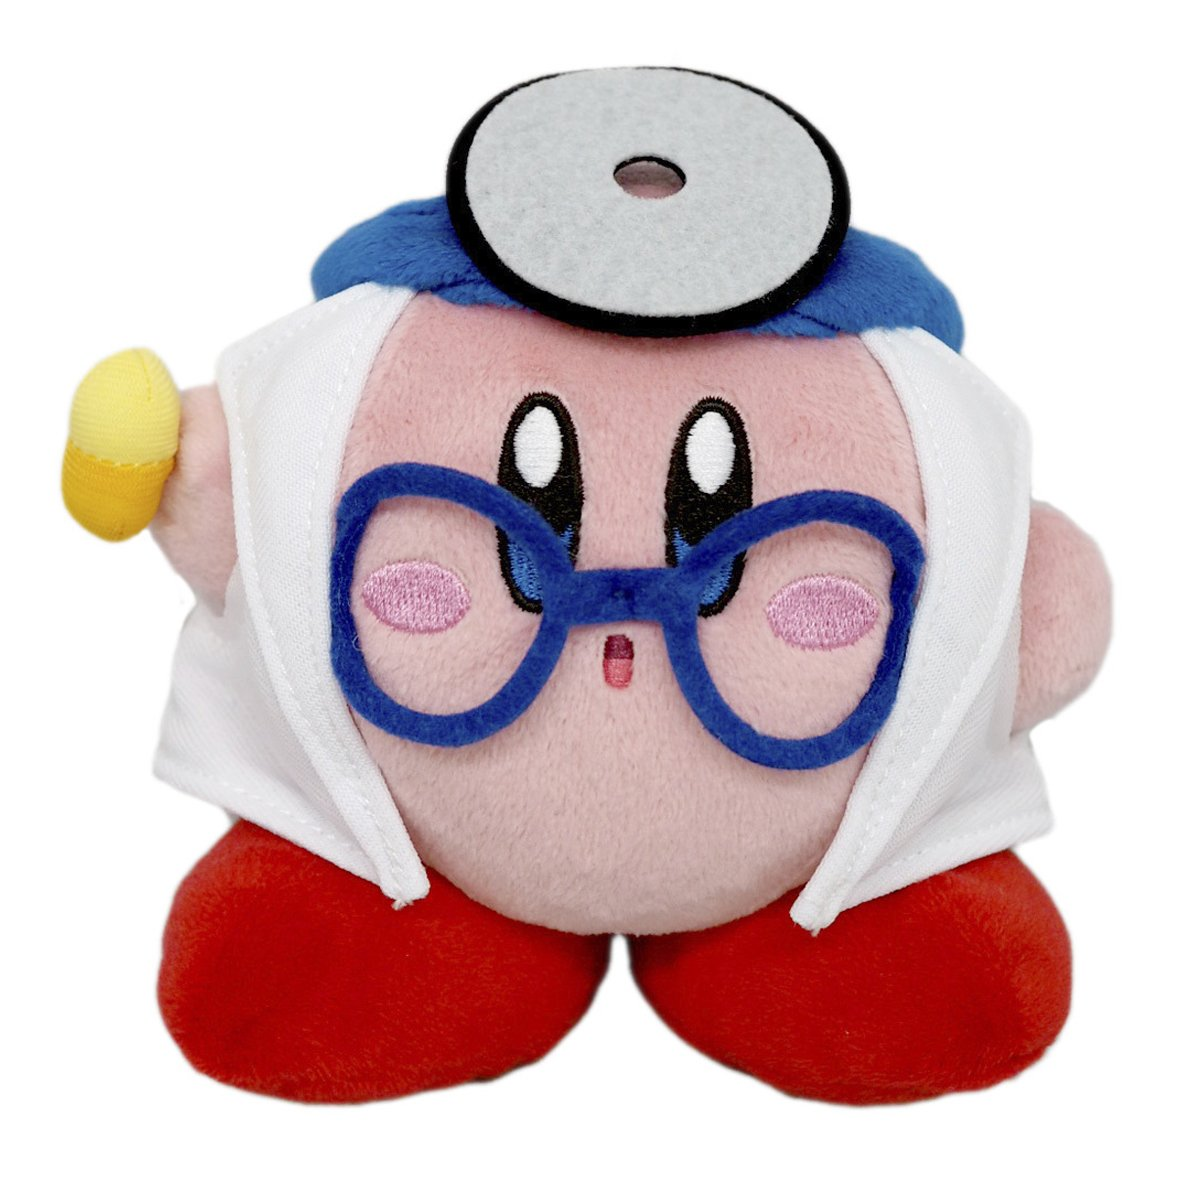 doctor-kirby-all-star-collection-plush